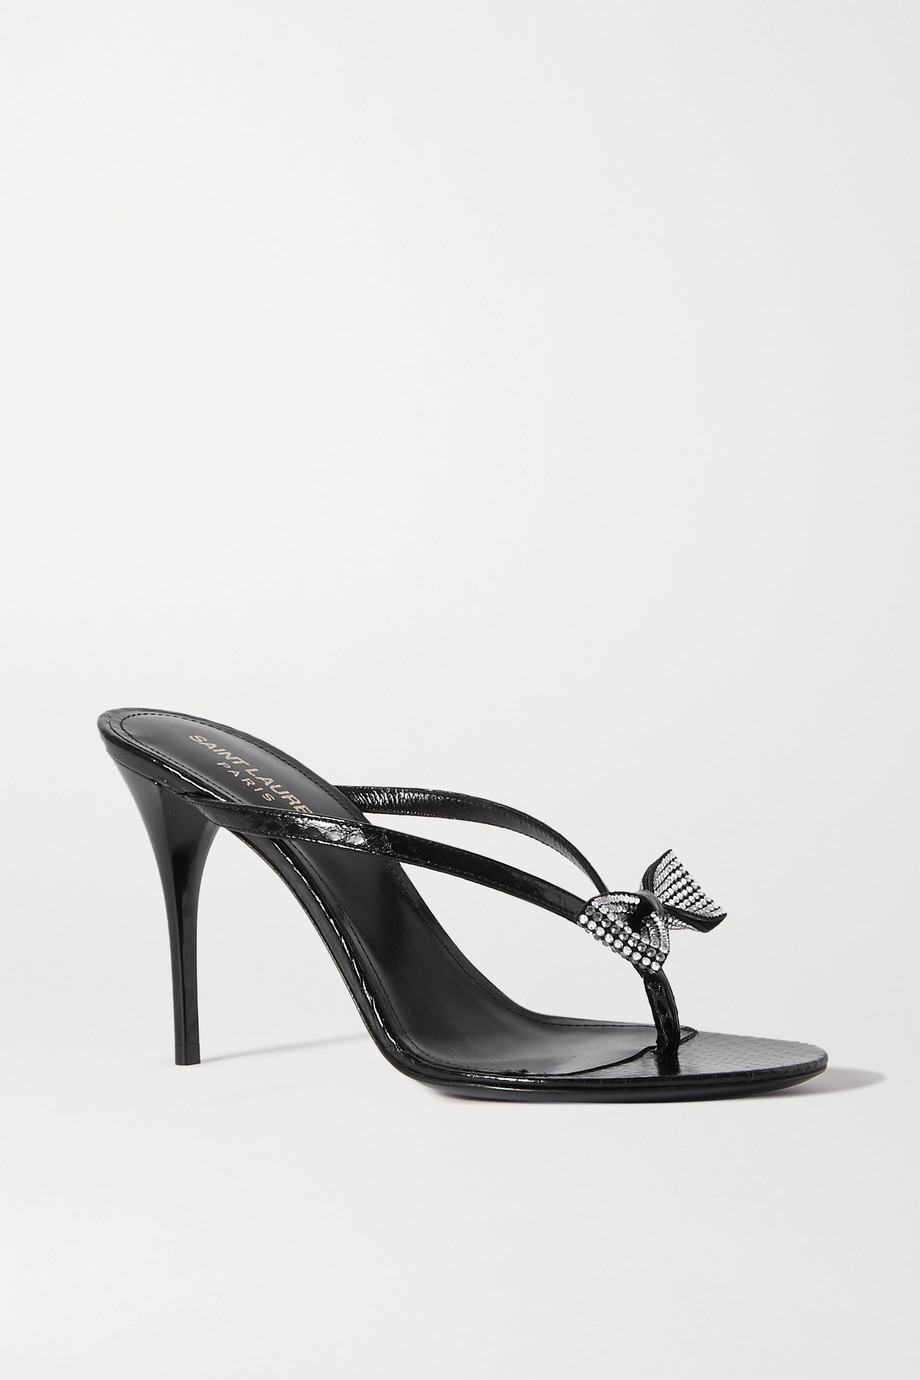 SAINT LAURENT Lexi crystal-embellished croc-effect leather sandals